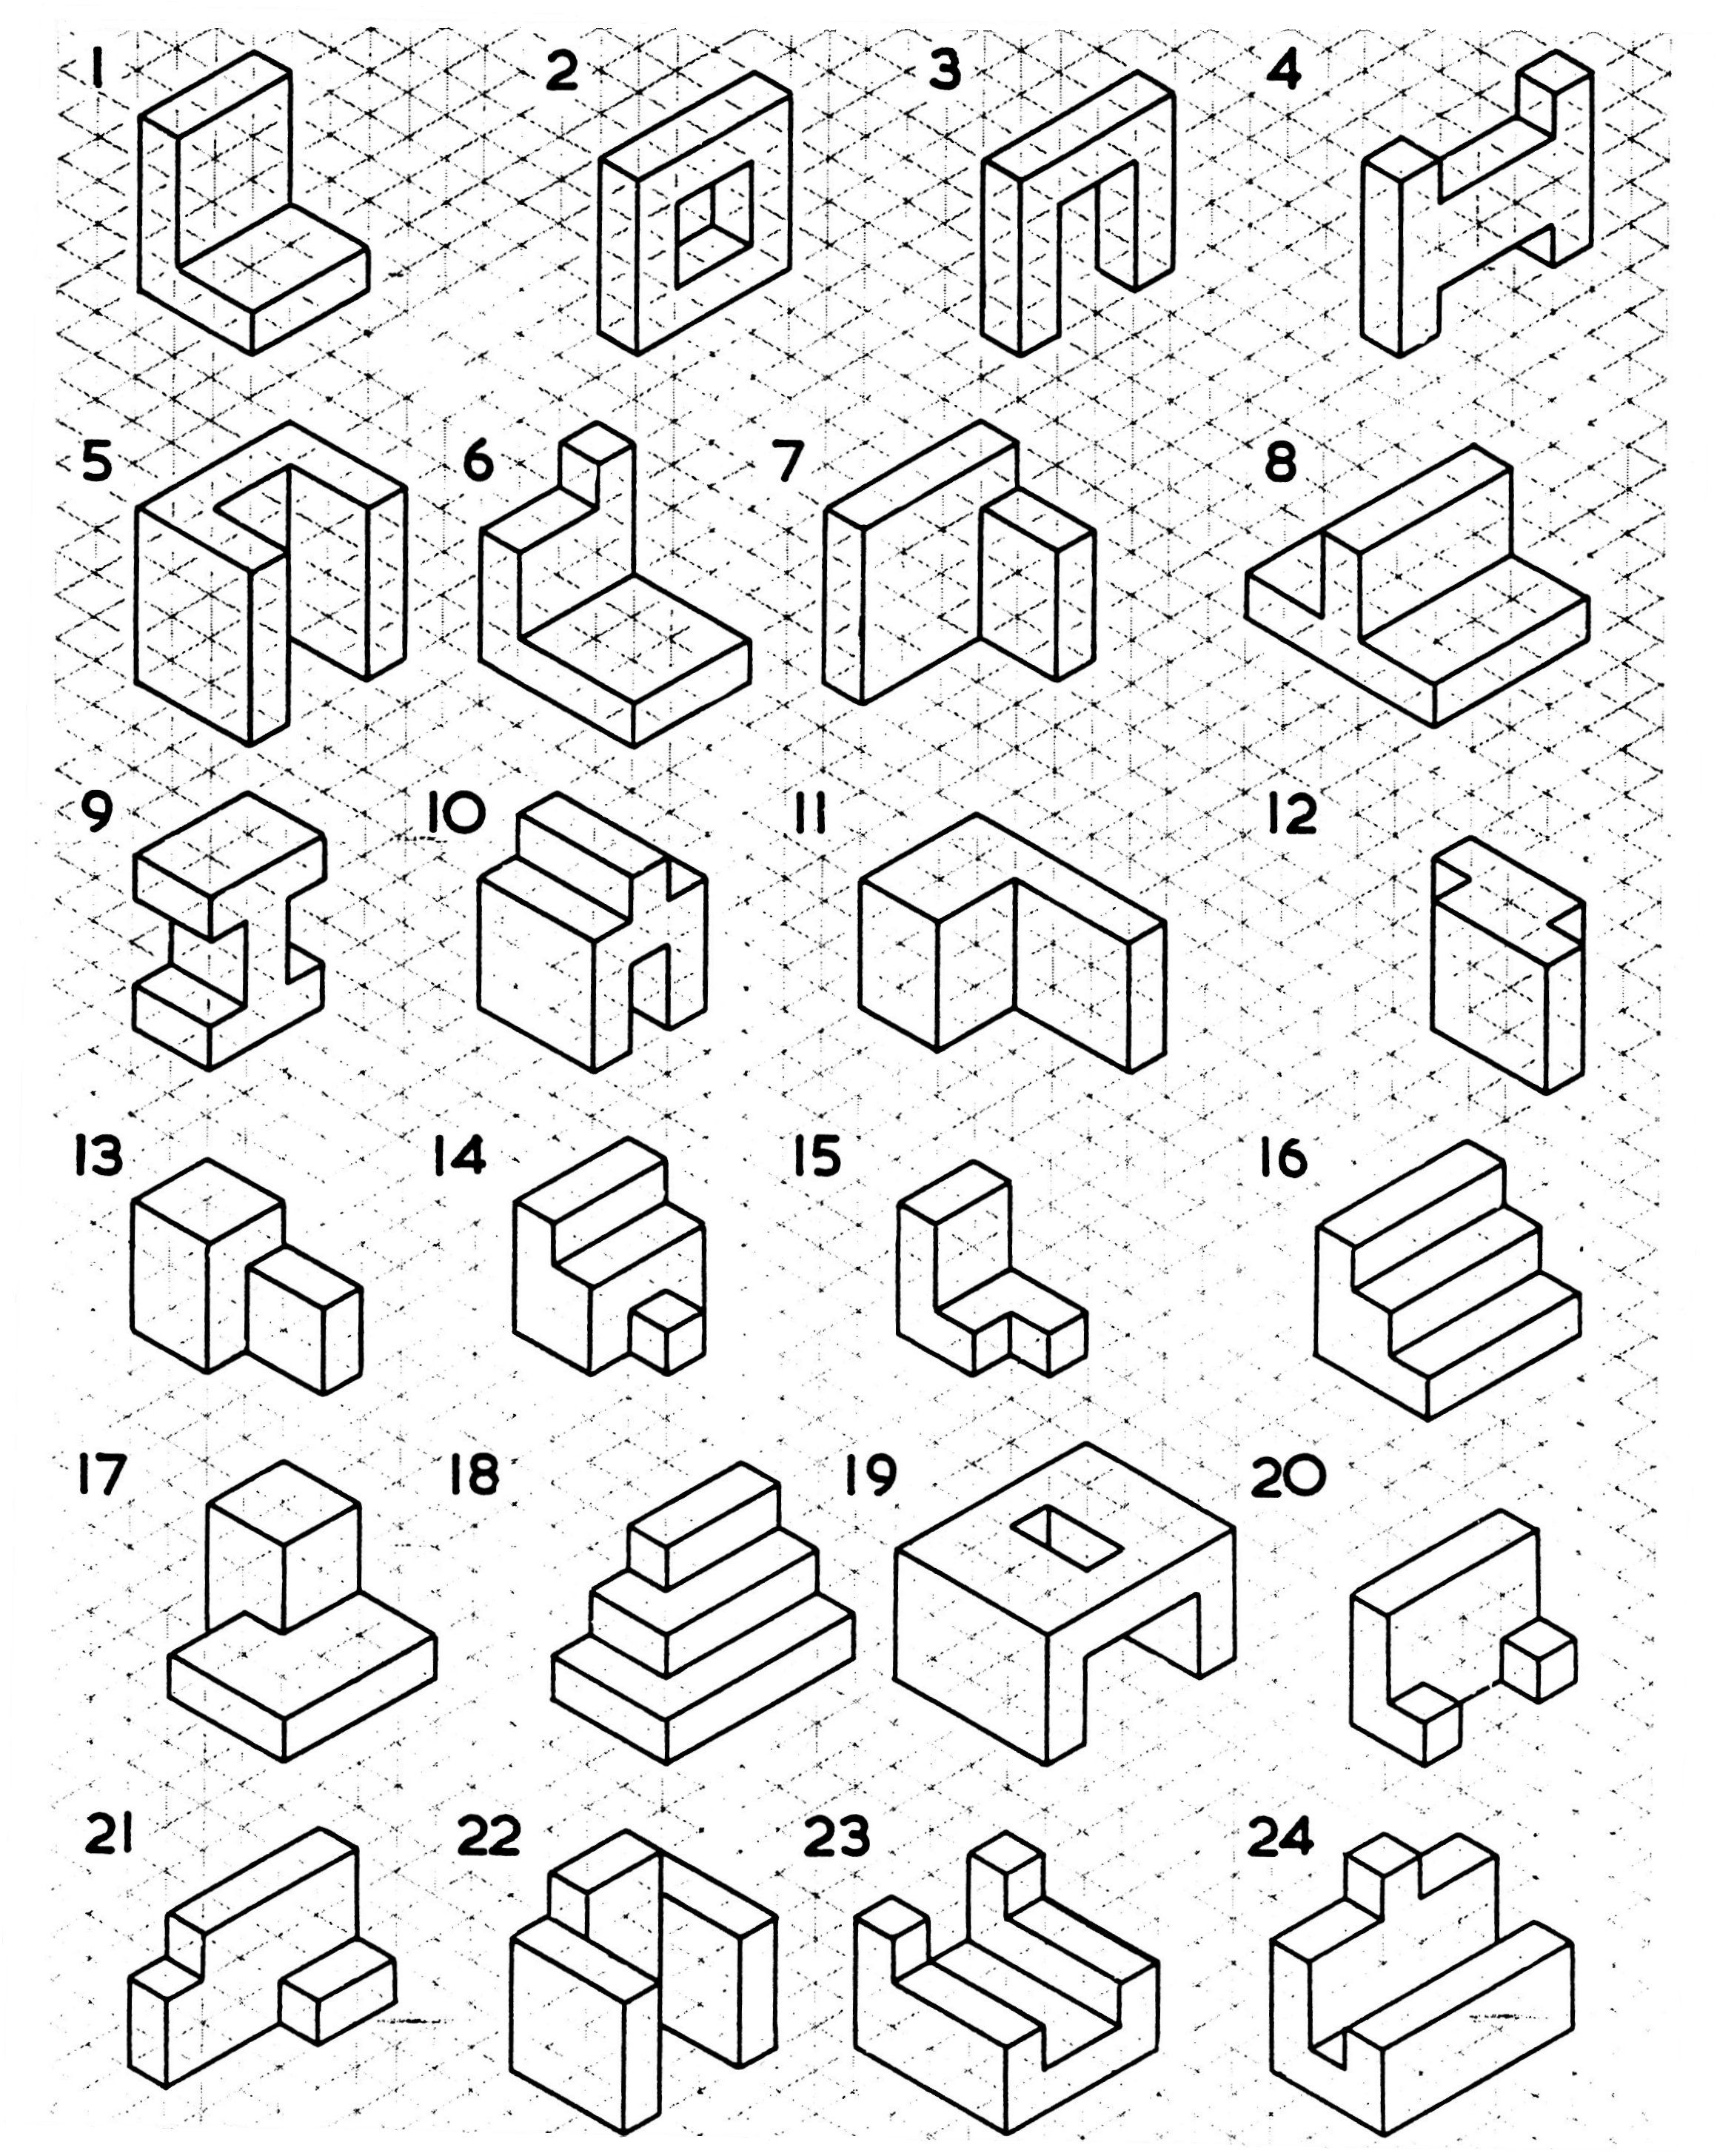 isometric_worksheet1.jpg (2319×2912)   Isometric drawing [ 2912 x 2319 Pixel ]